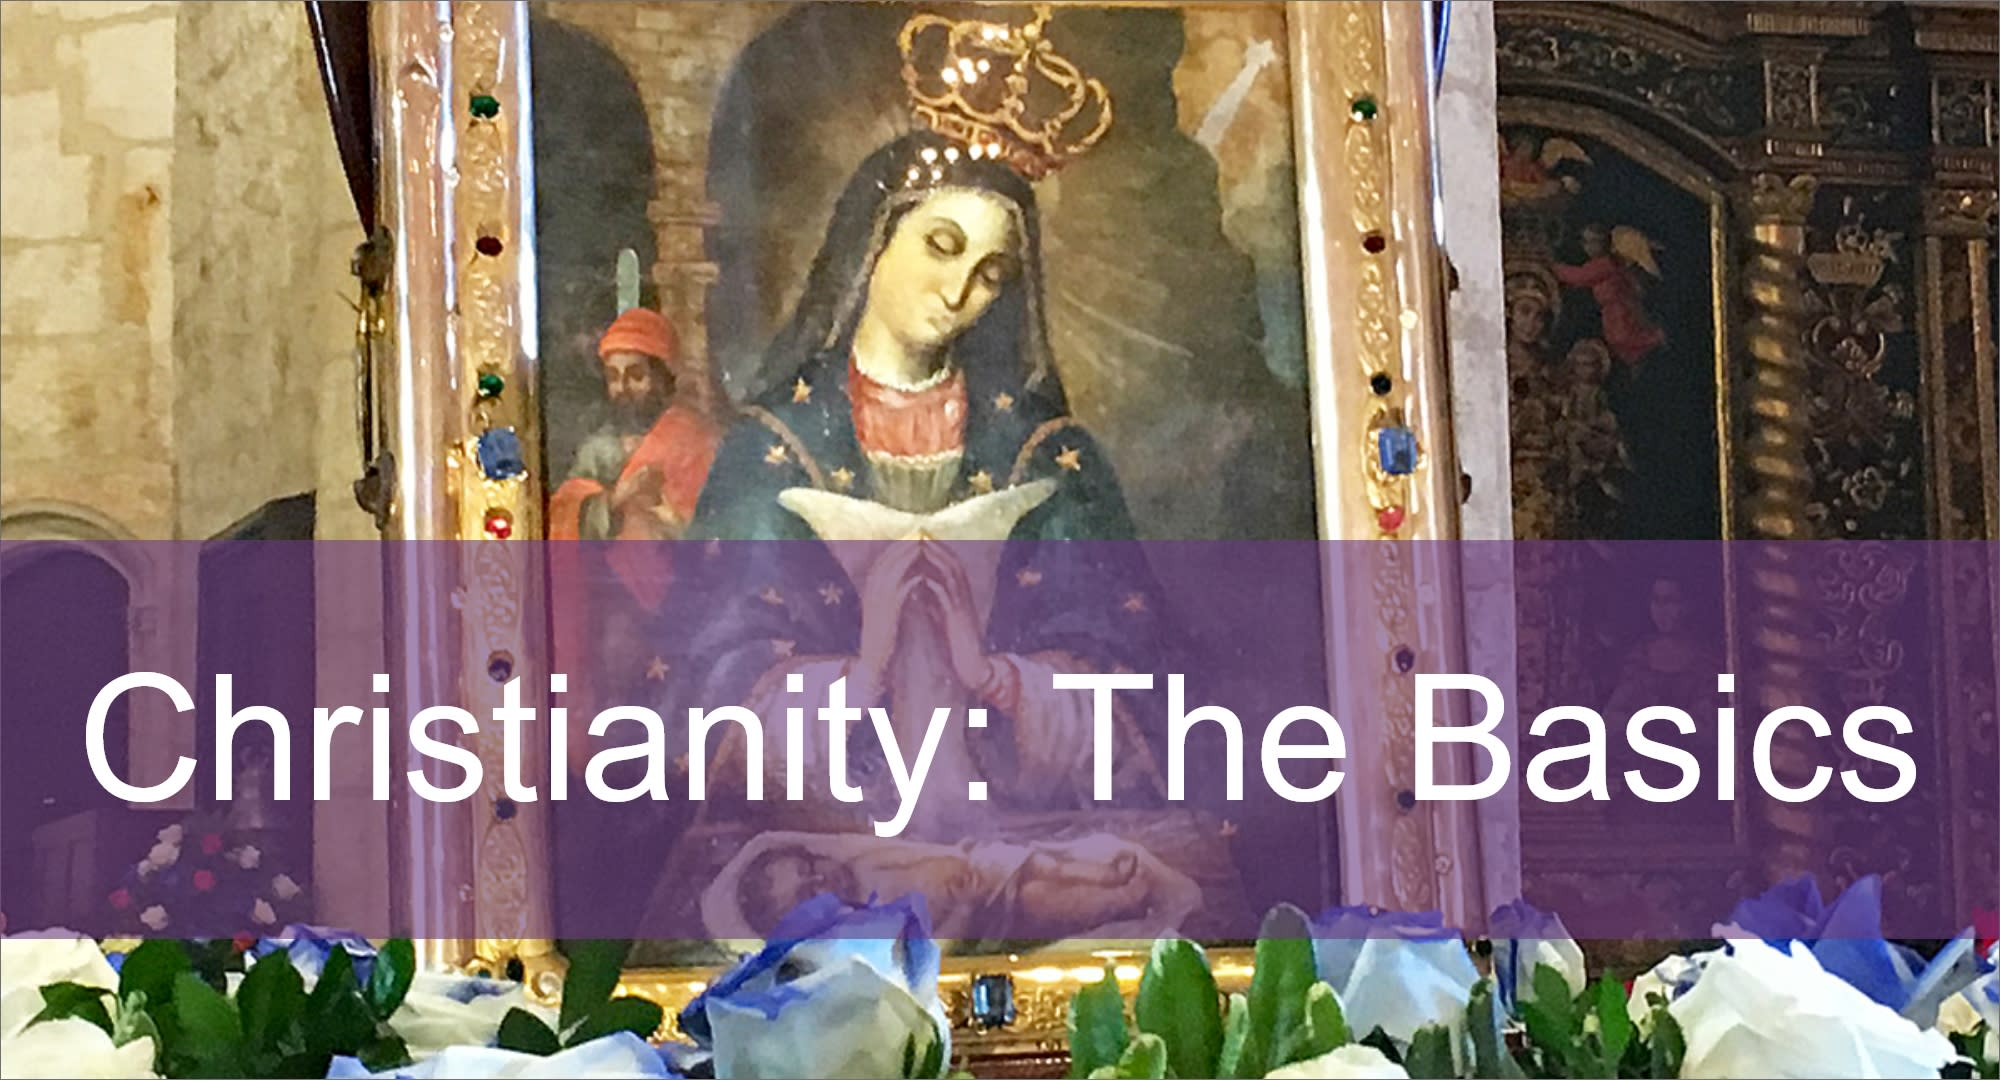 Click here to view articles on Christianity: the Basics